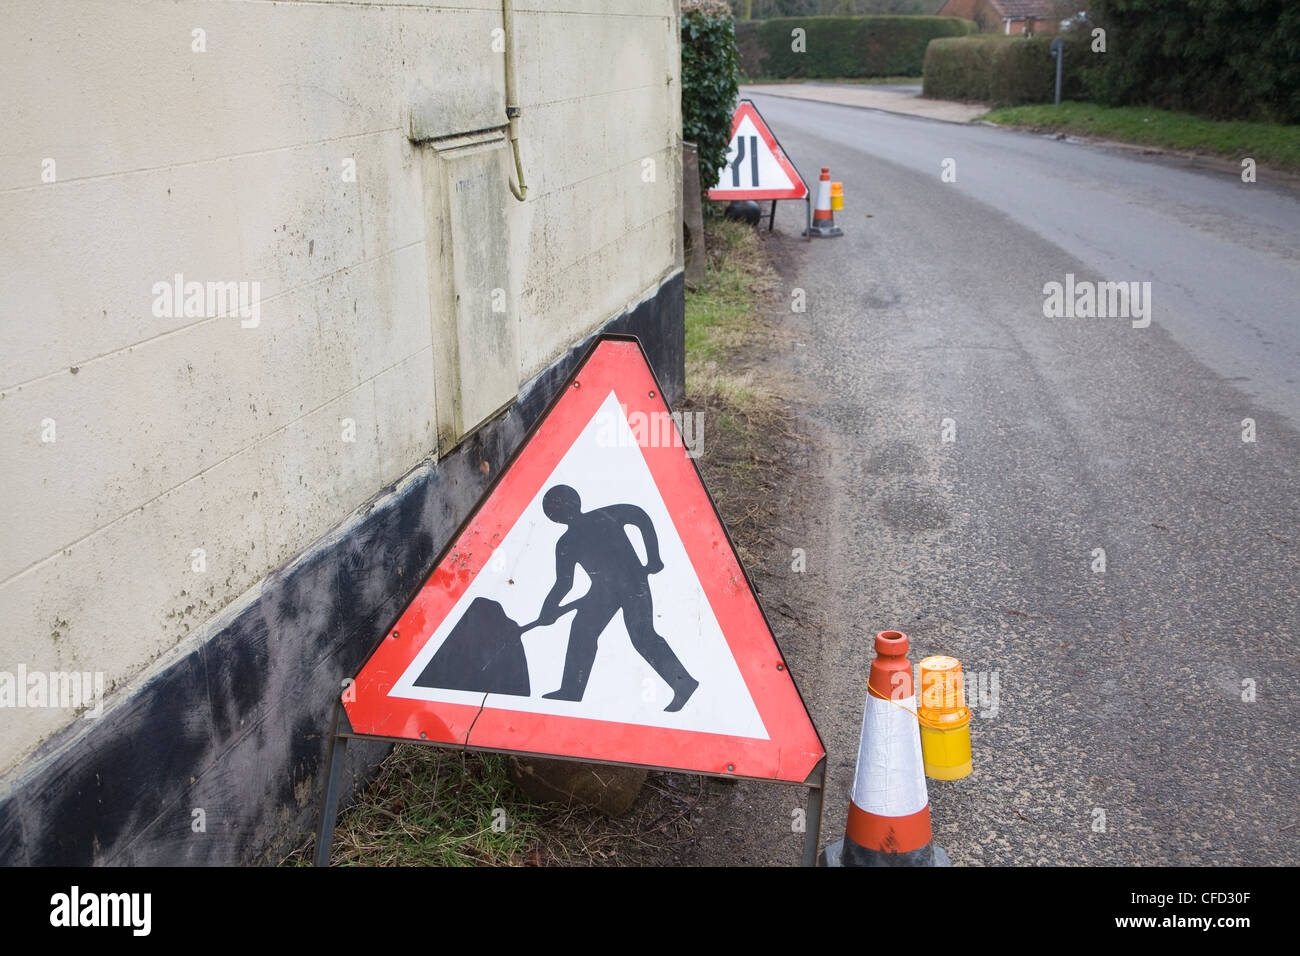 Man at work triangle road sign on street - Stock Image